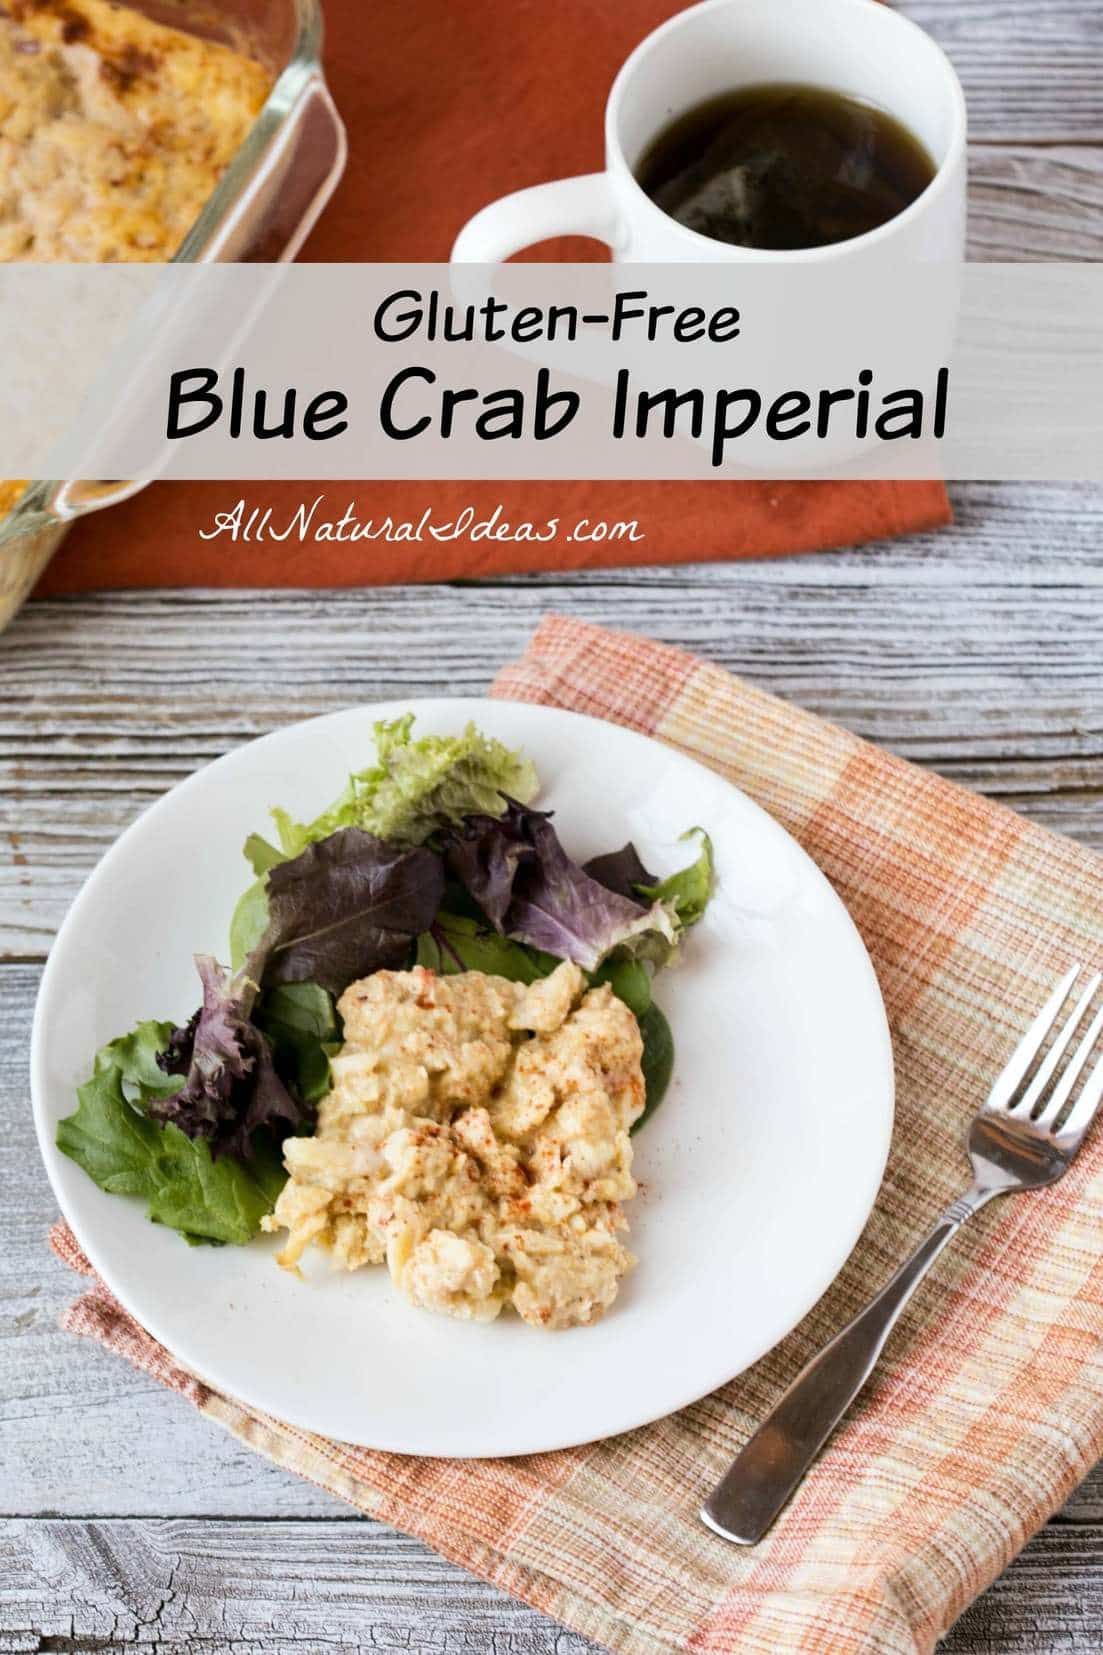 A delicious blue crab imperial recipe that's gluten free. It's an excellent blend of crab meat, mayonnaise, mustard, and seasoning for any seafood lover. | allnaturalideas.com